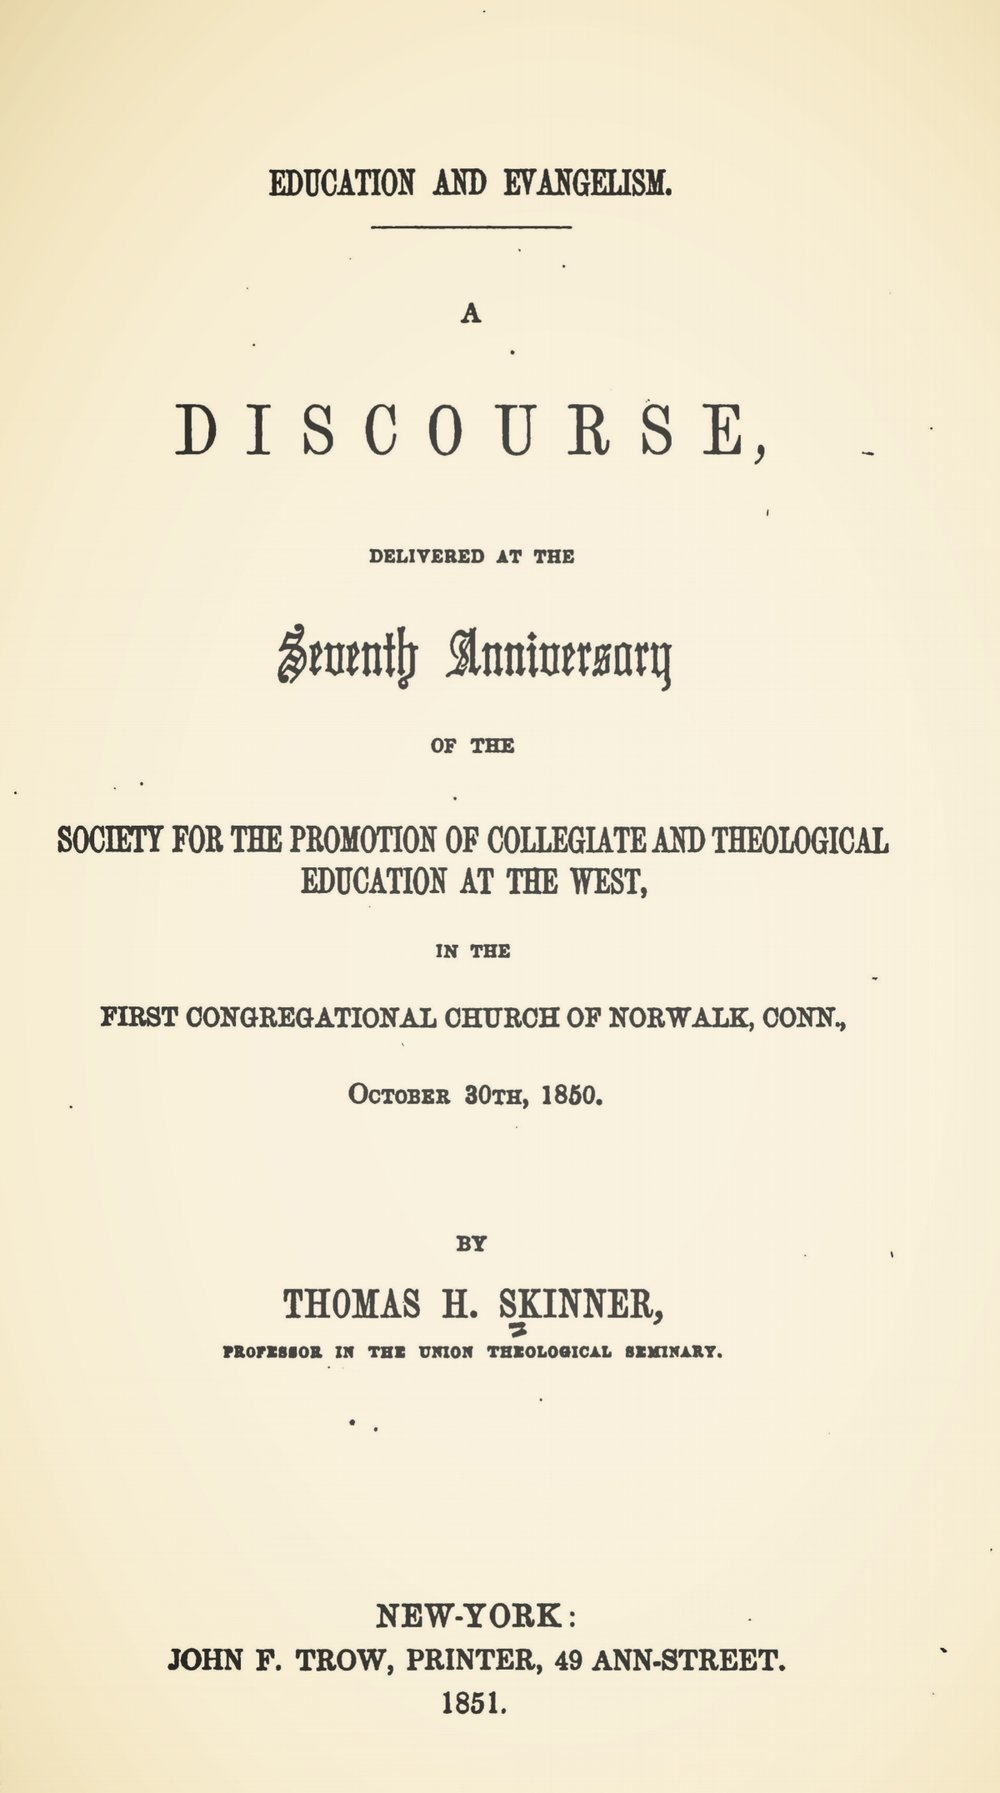 Skinner, Thomas Harvey, Education and Evangelism Title Page.jpg